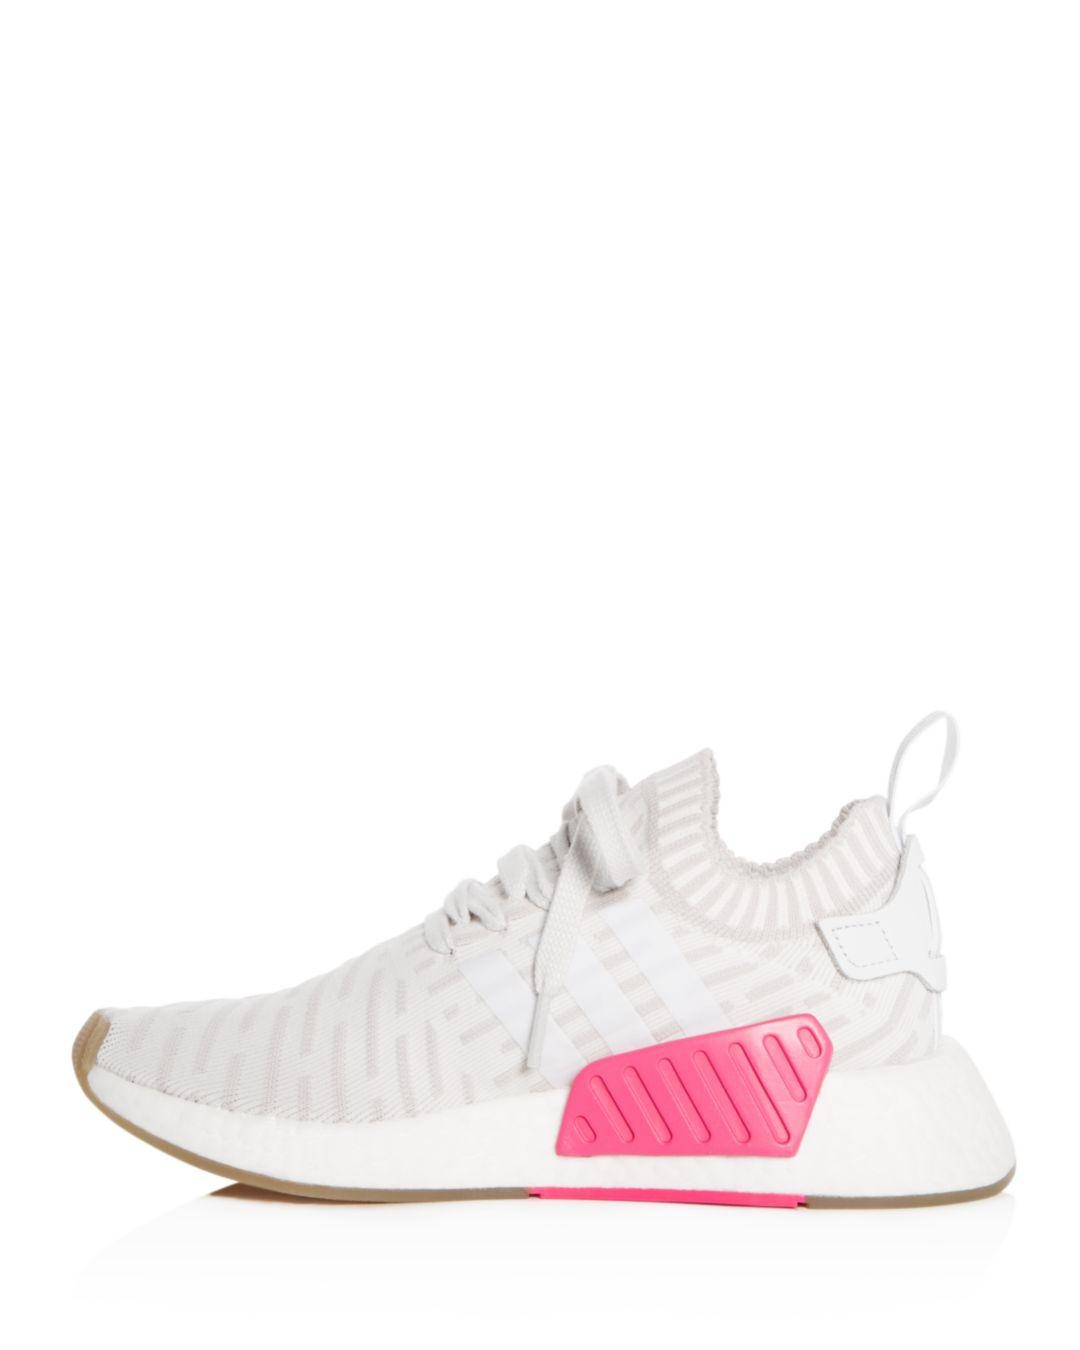 51585430d62d4 Lyst - adidas Women s Nmd R2 Knit Lace Up Sneakers in White